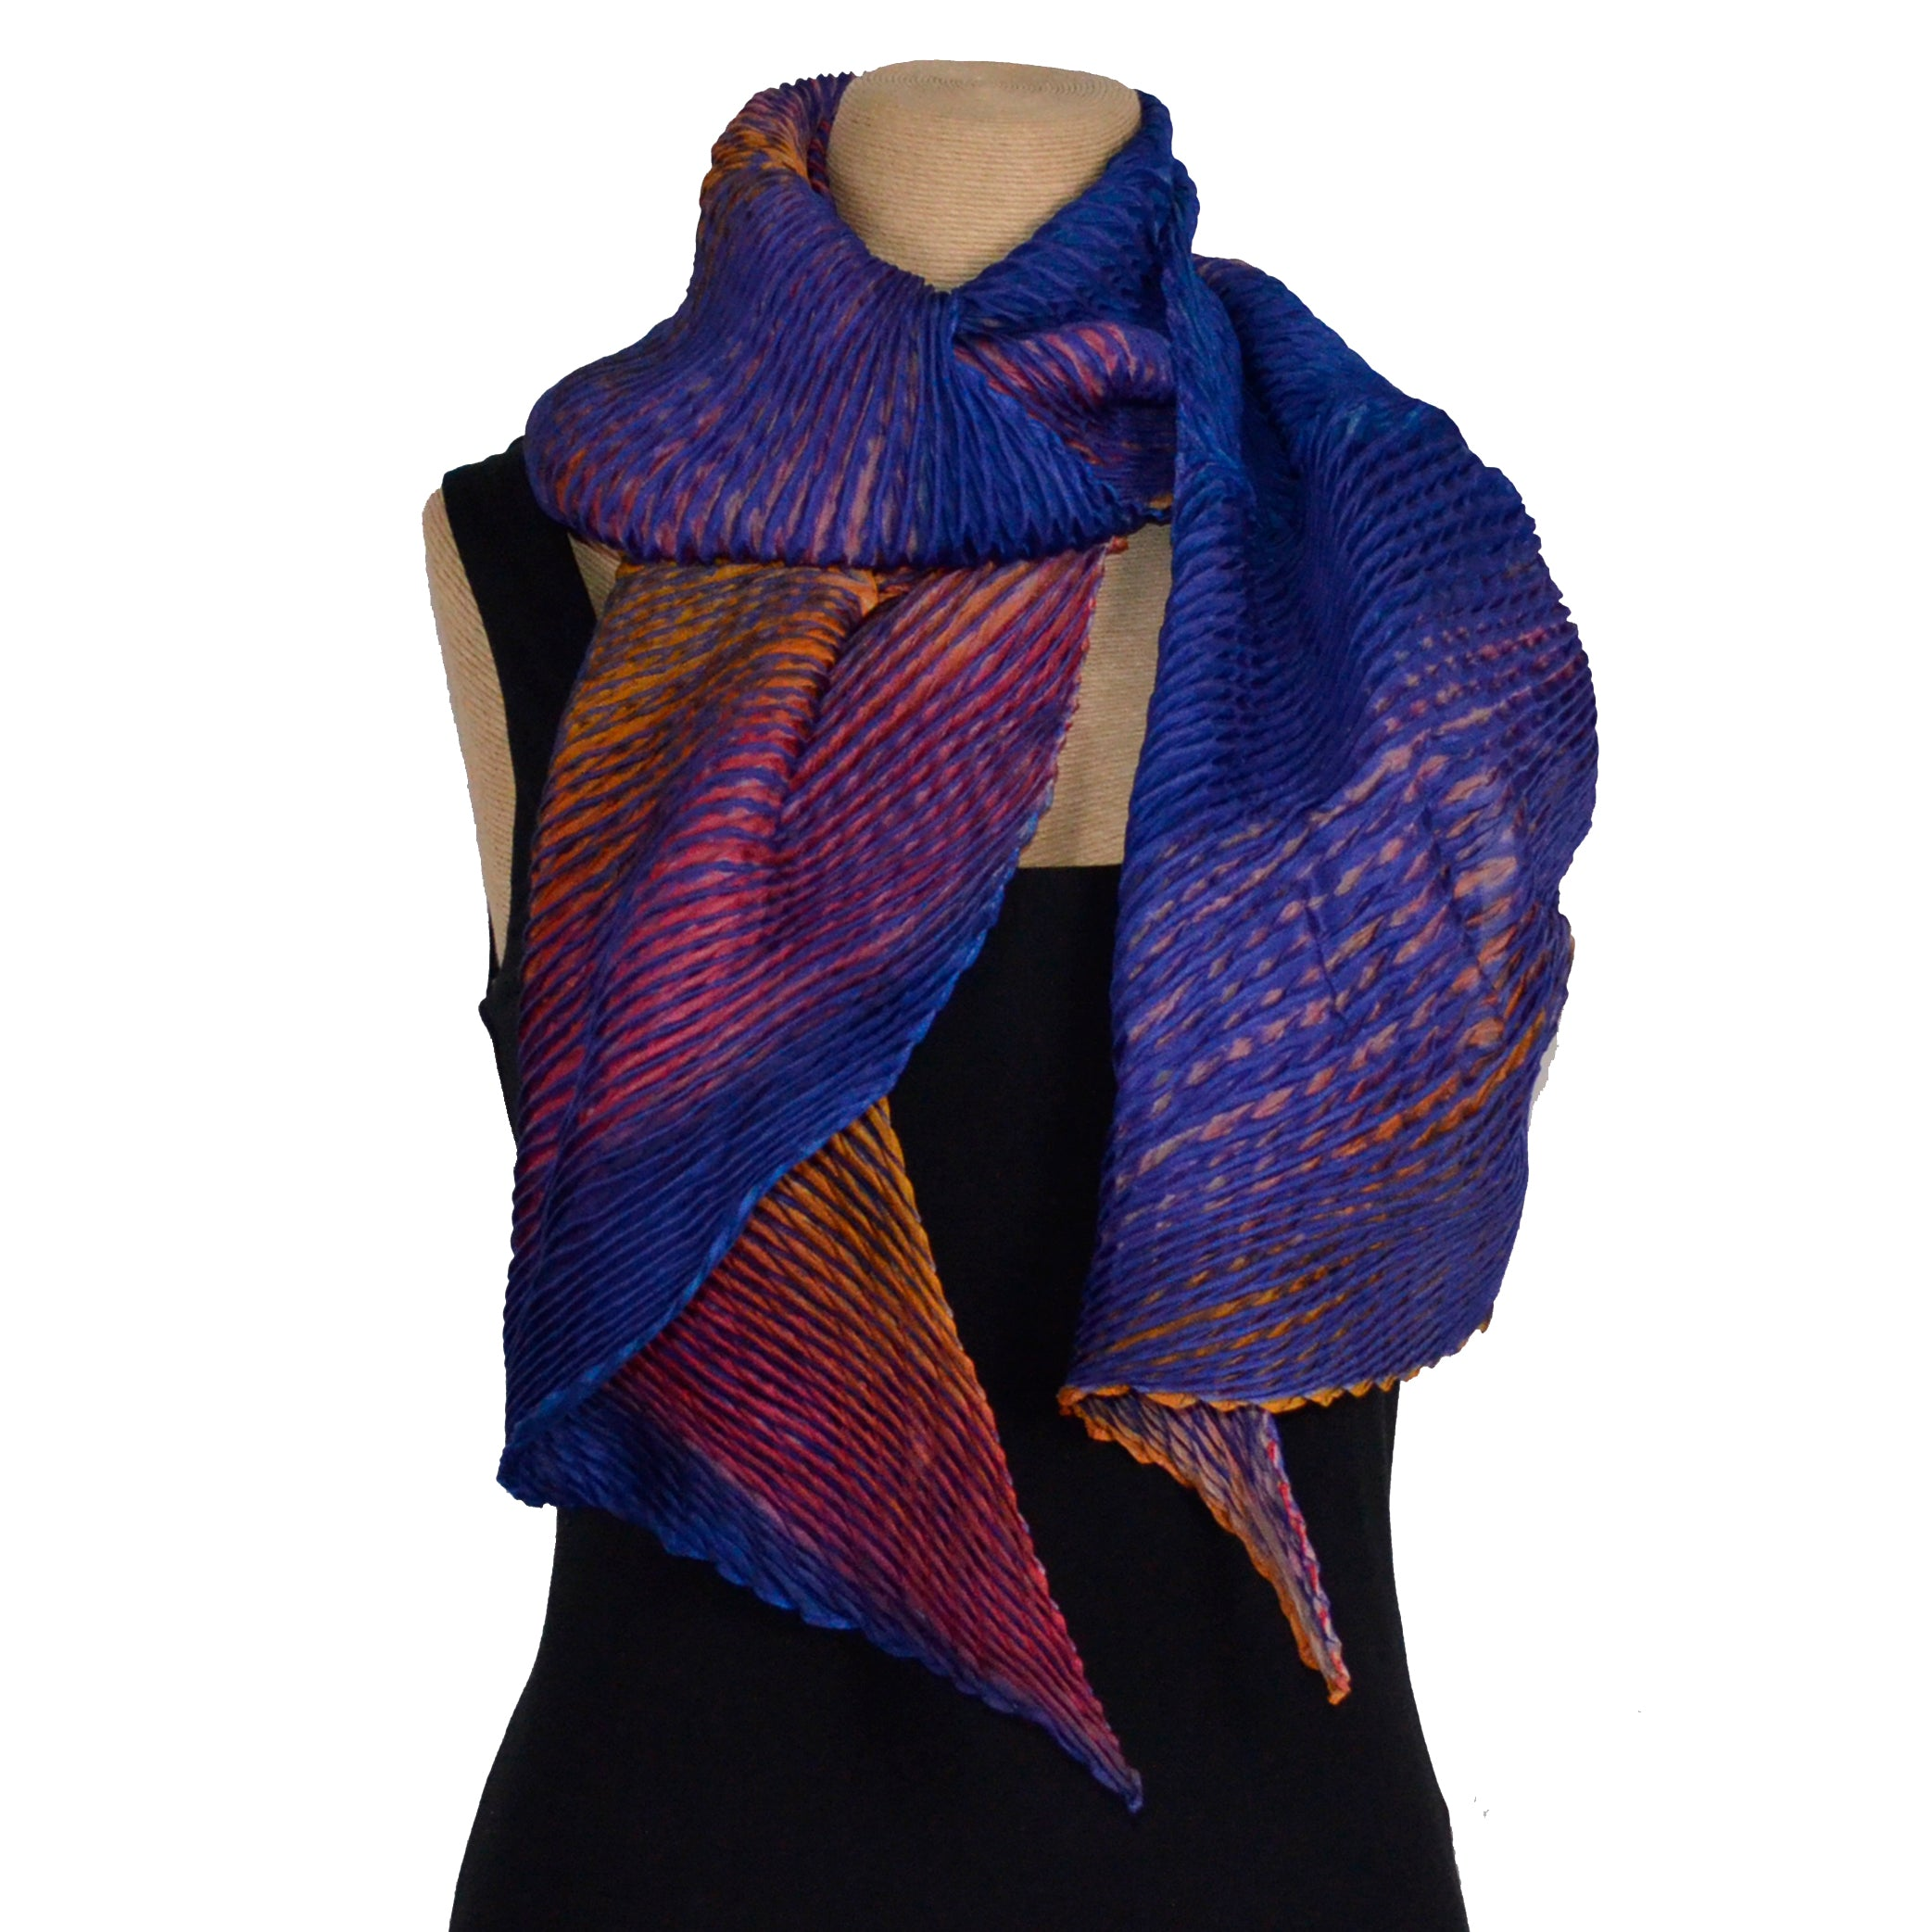 Cathayana Scarf, Zigzag, Midnight Blue/Golden/Orange